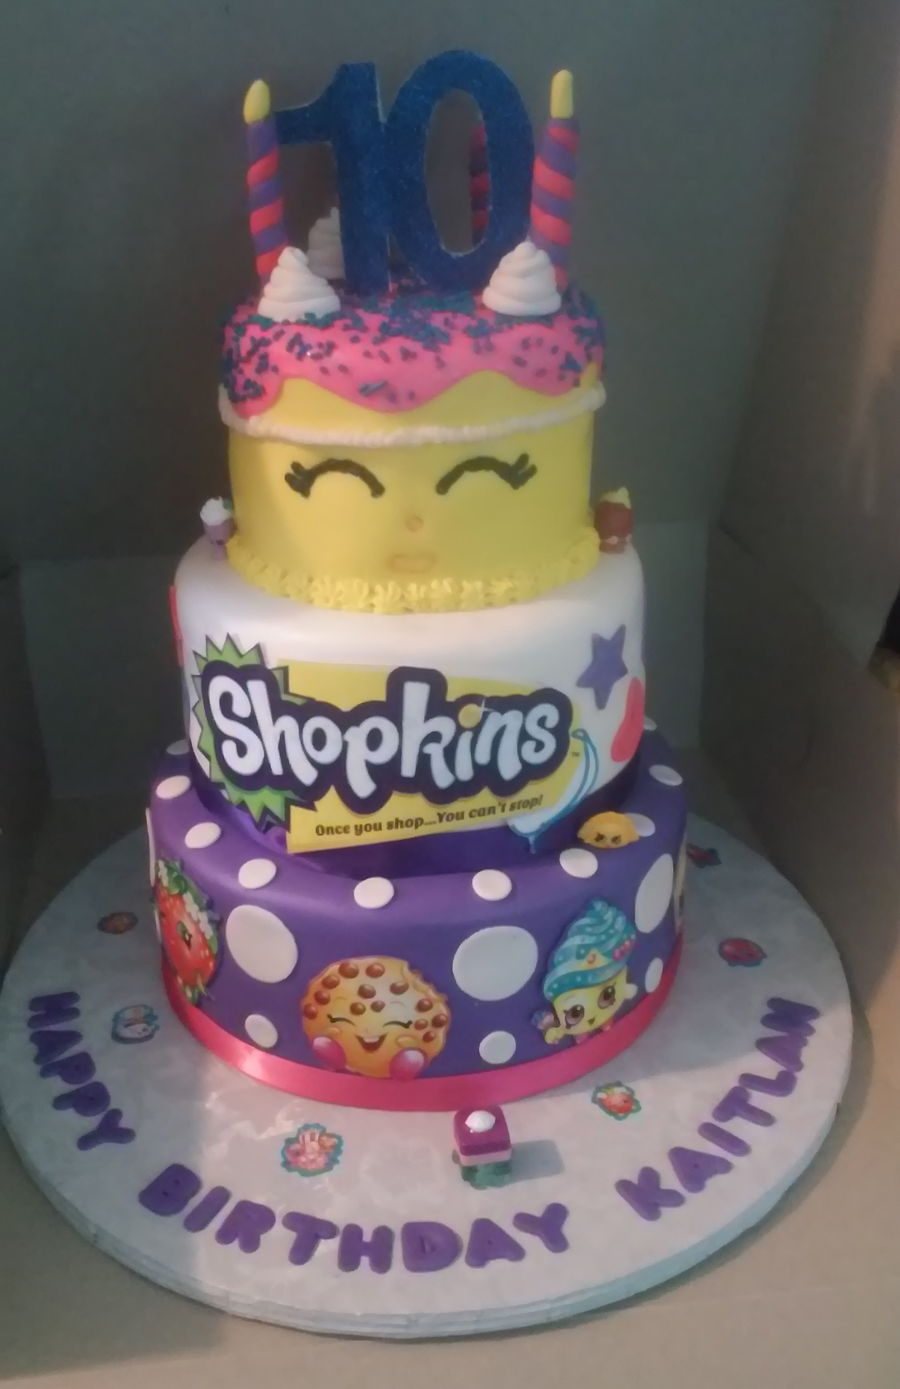 3 Tier Shopkins With wishes Themed Birthday Cake CakeCentralcom